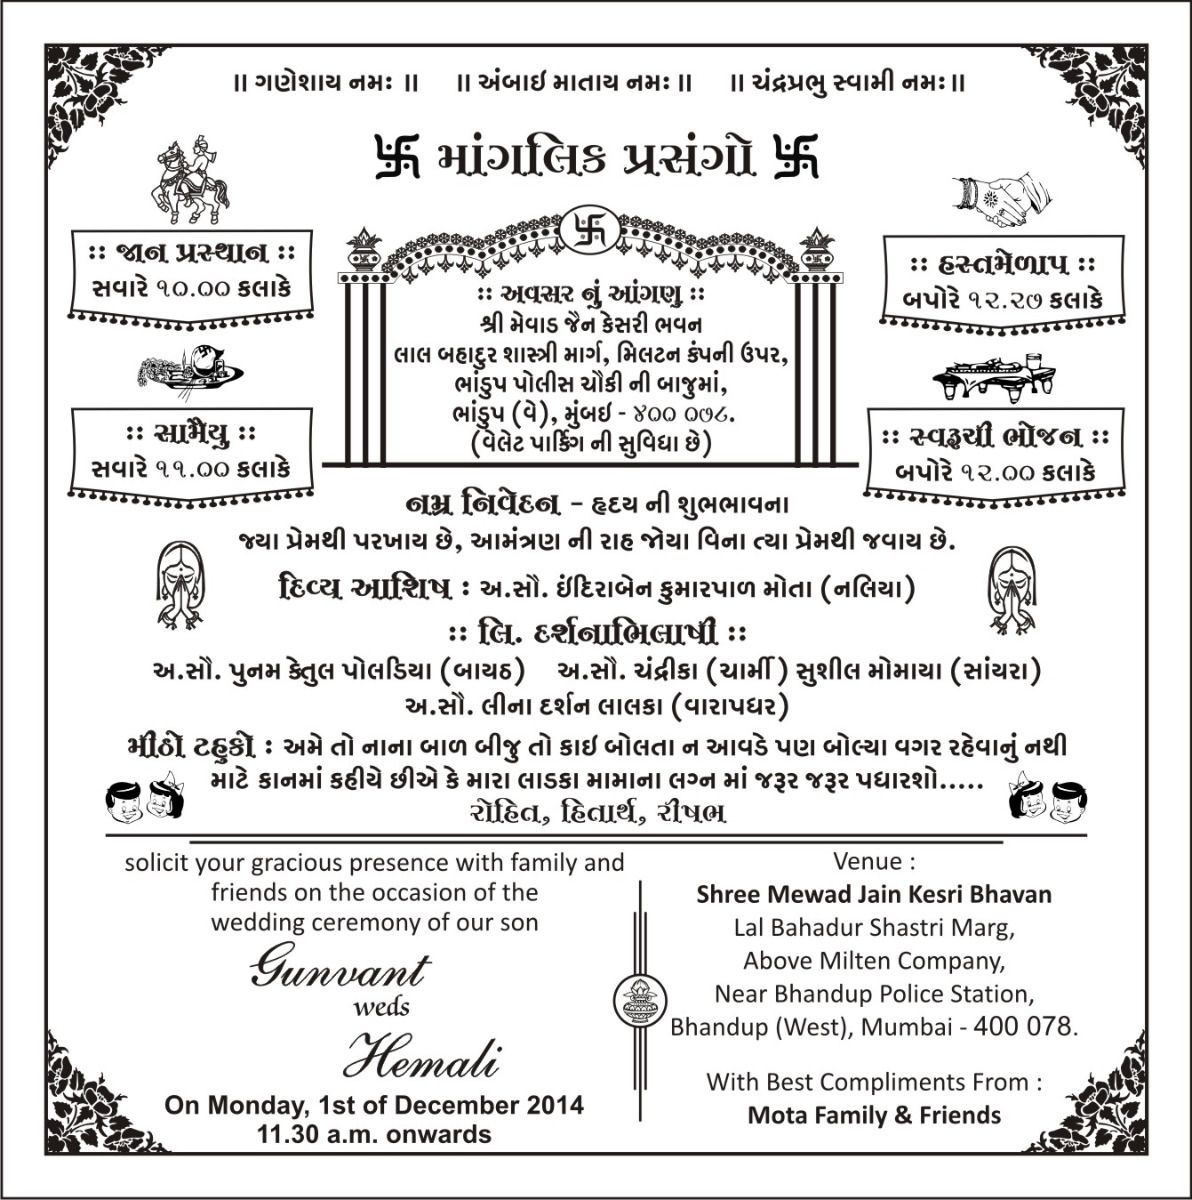 Pin By Kalpesh Bhayani On Format Invitation Card Design Wedding